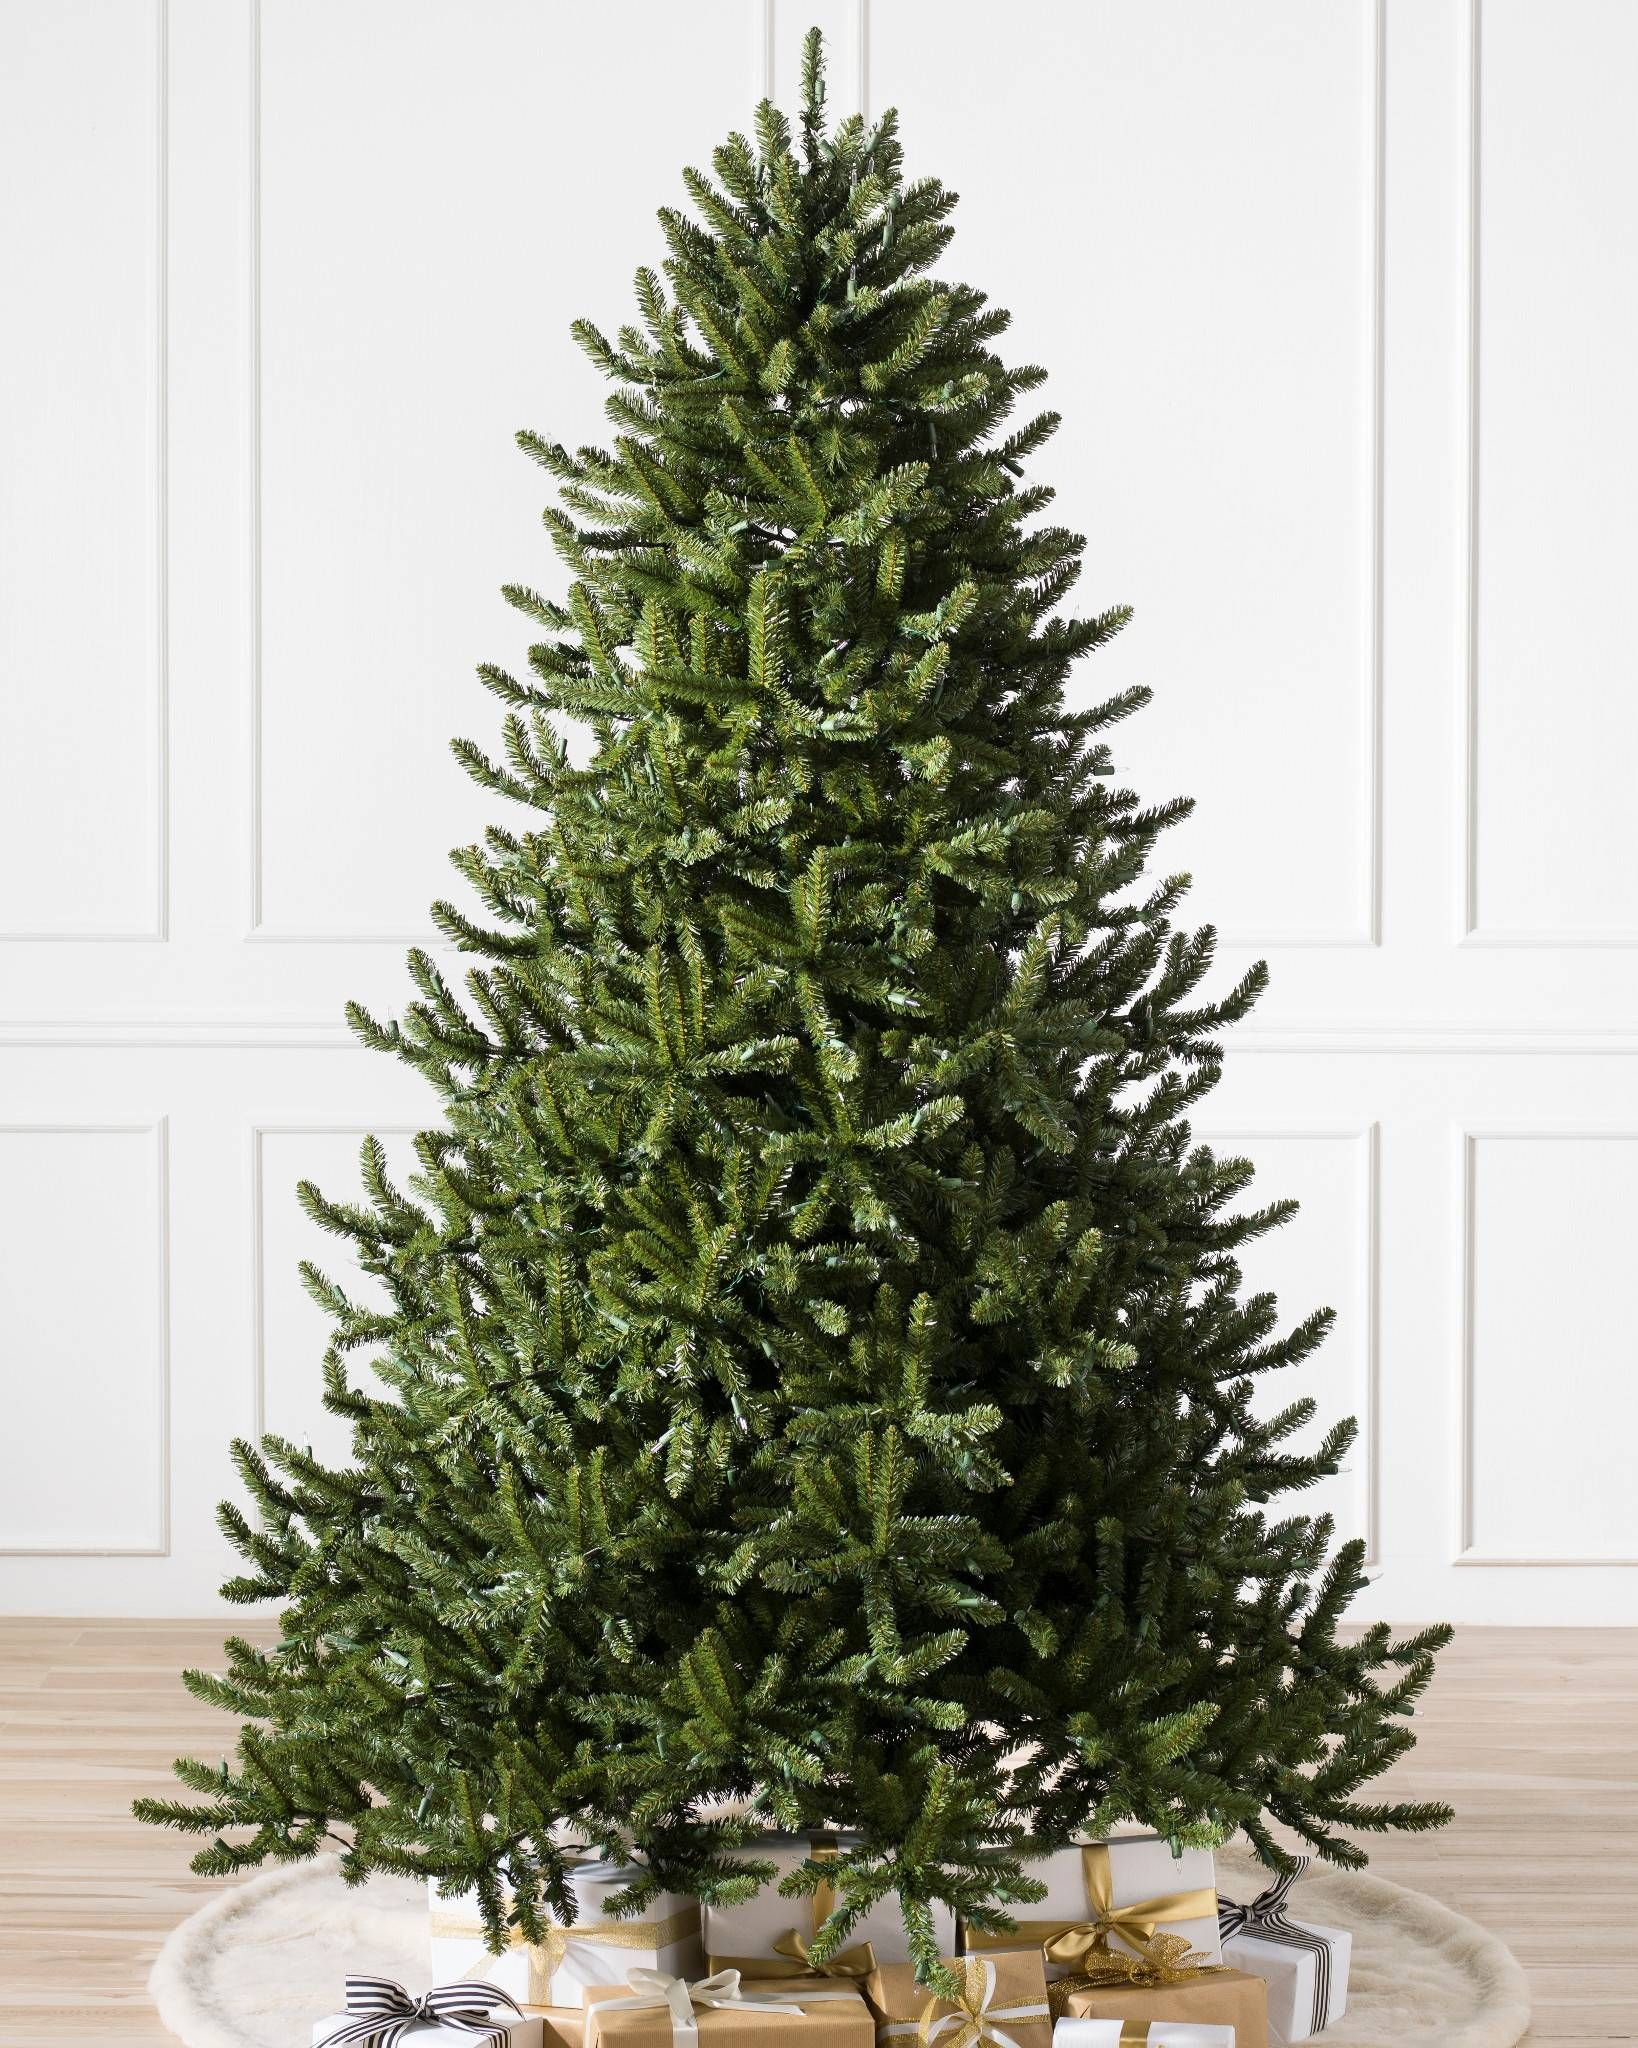 Adirondack Spruce Tree With Images Types Of Christmas Trees